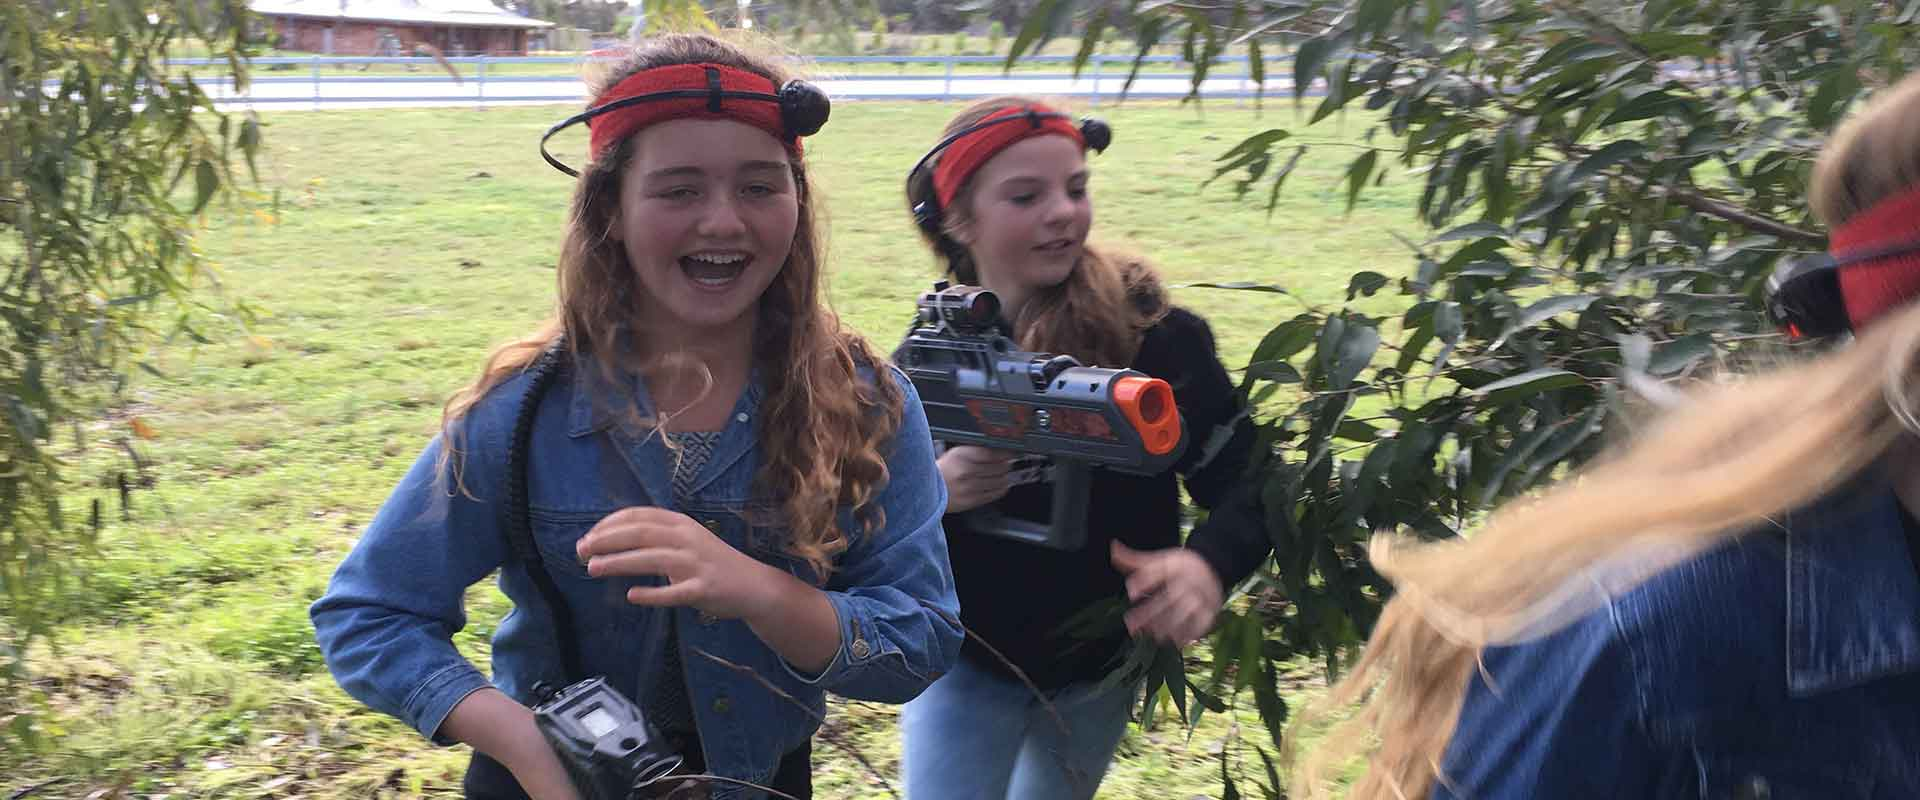 Birthday Party Fun with Mobile Laser Quest Laser Tag Skirmish